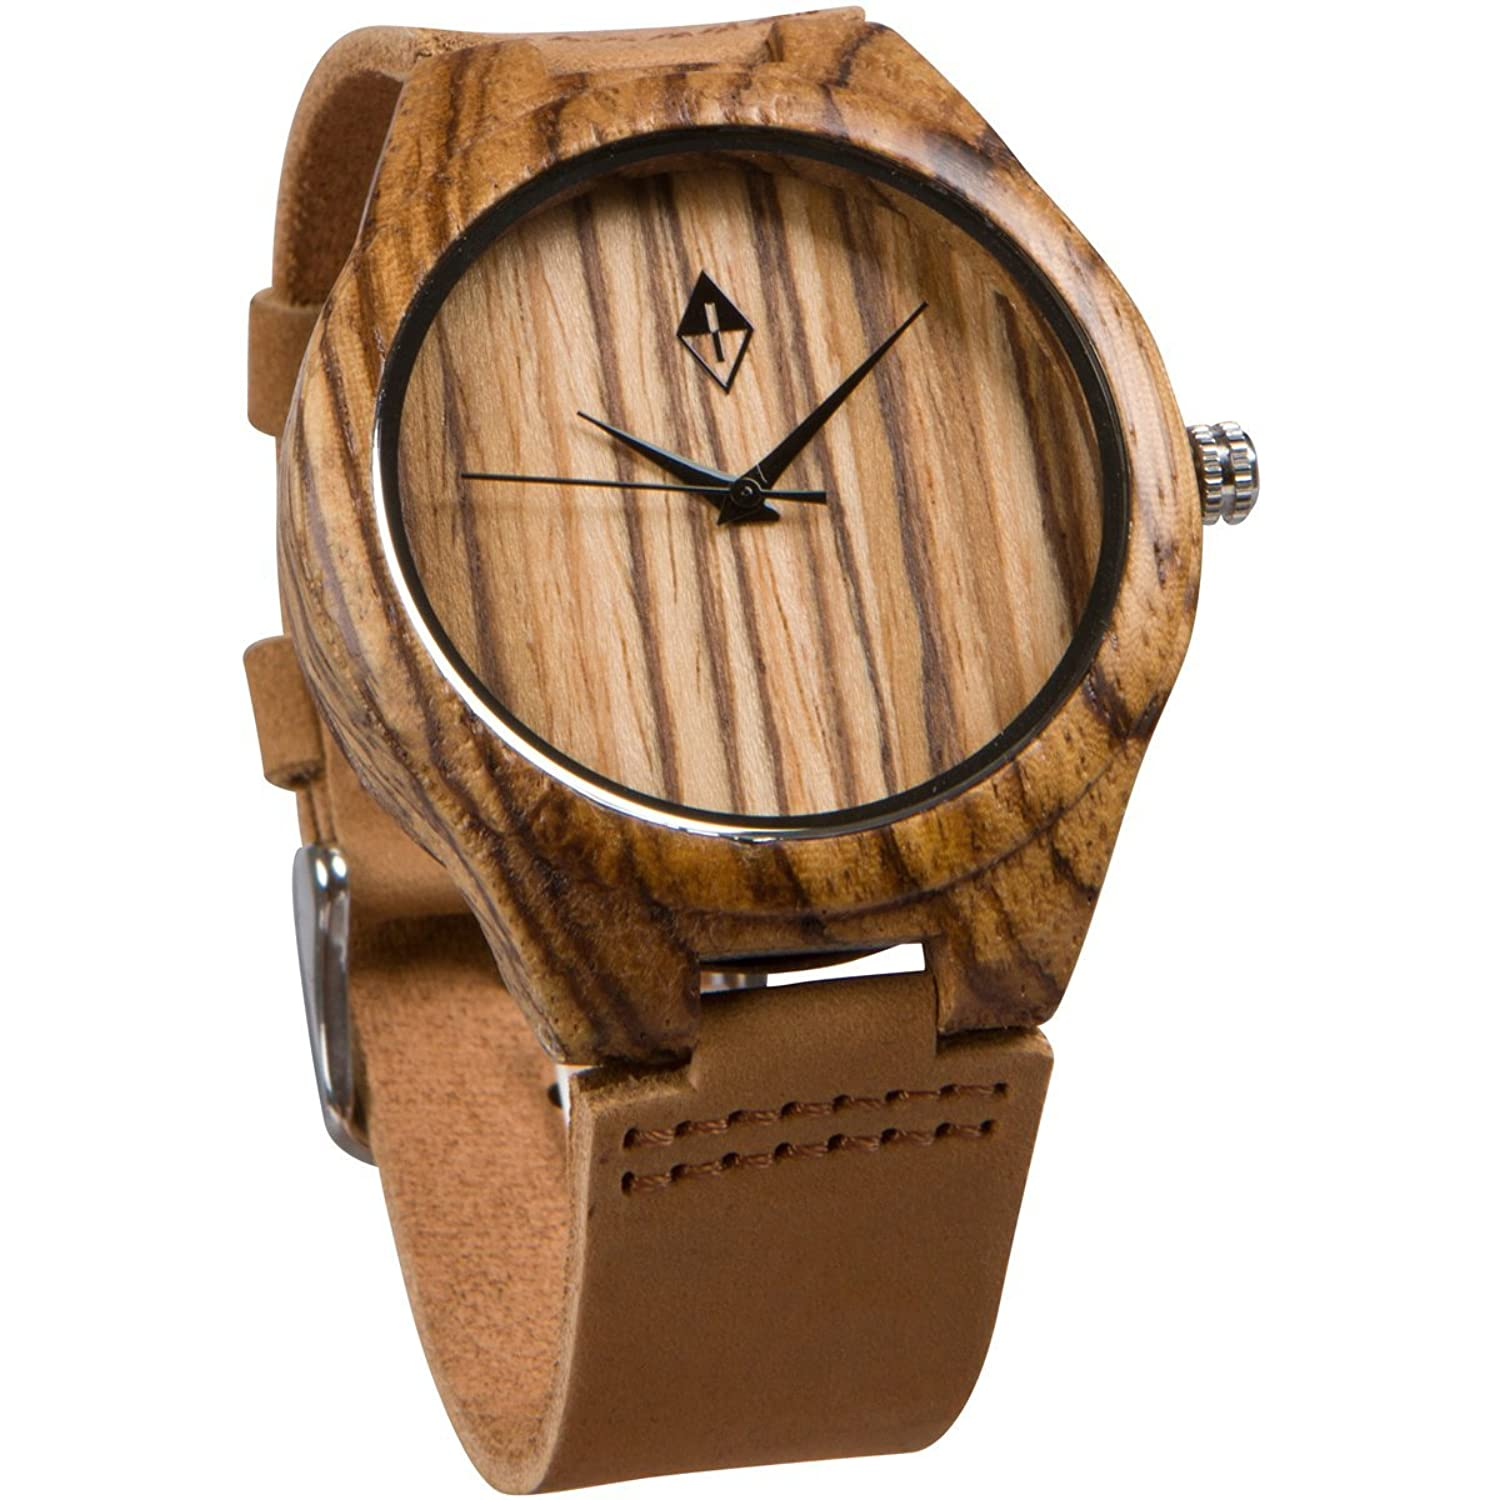 red shop antique products unique design dress ebony band crop bobo in quartz solid watch with mens sandalwood all bird wooden walnut handmade sale watches